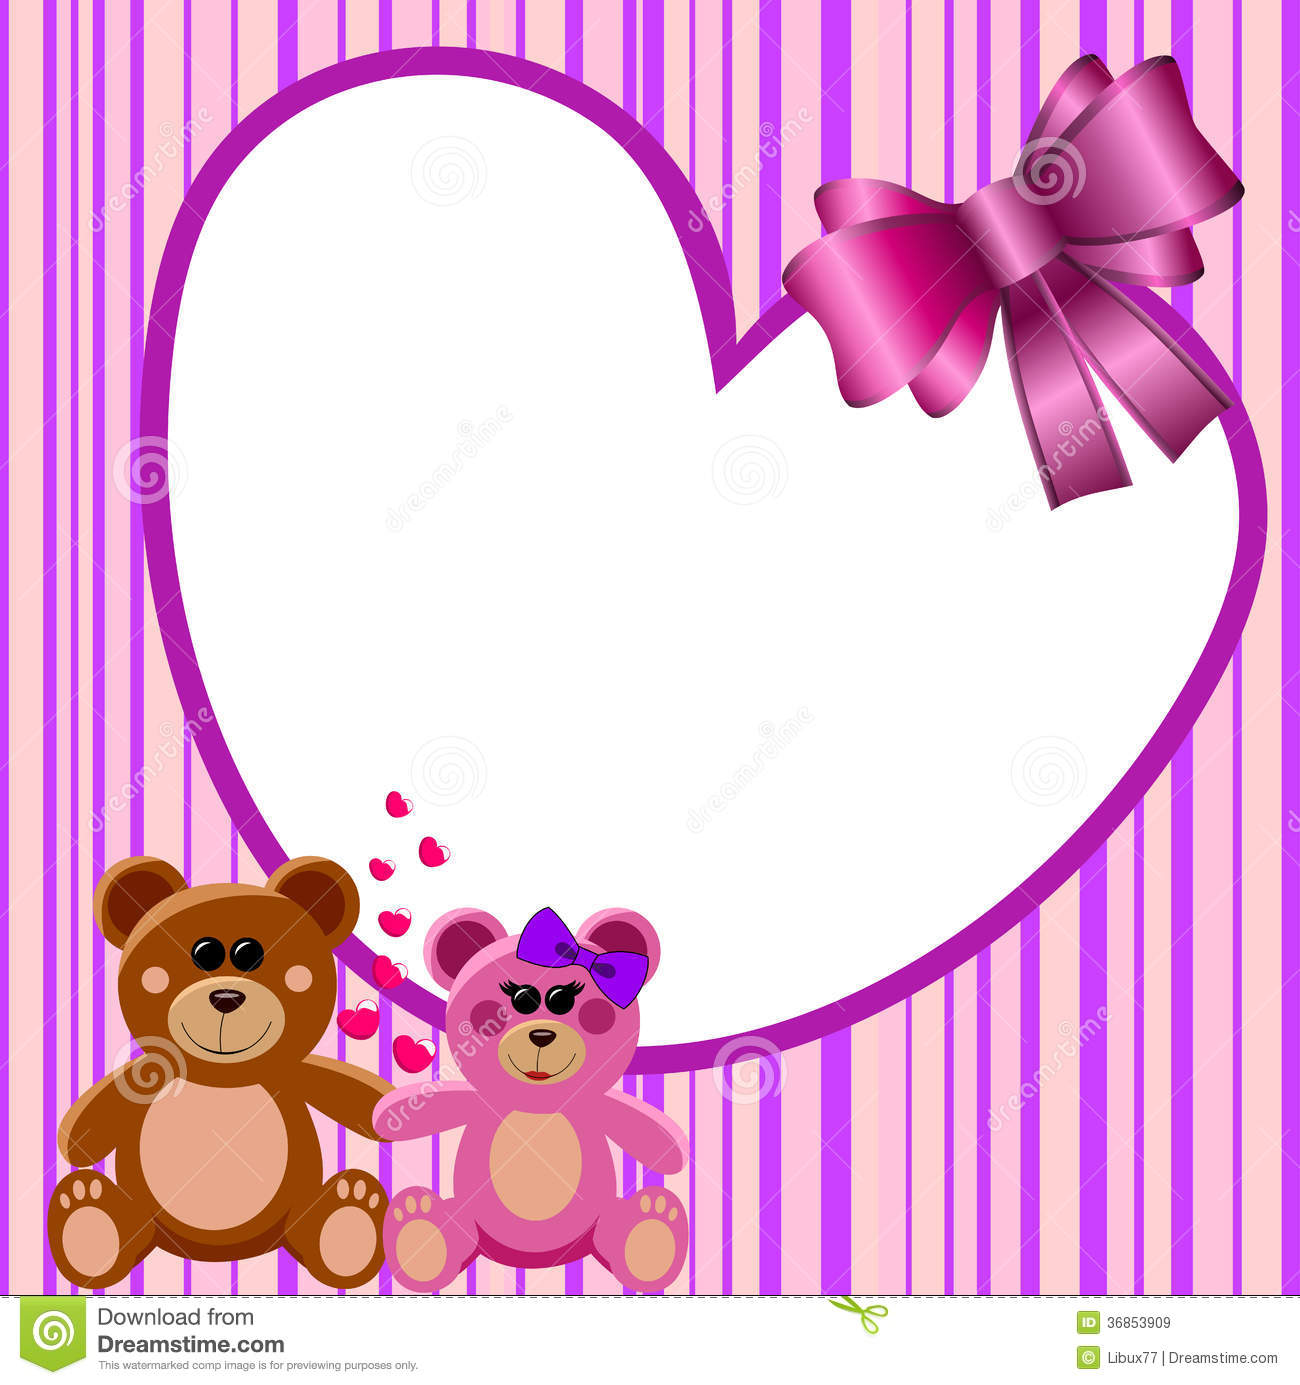 Love Heart Frame Teddy Bears Illustration 36853909 - Megapixl